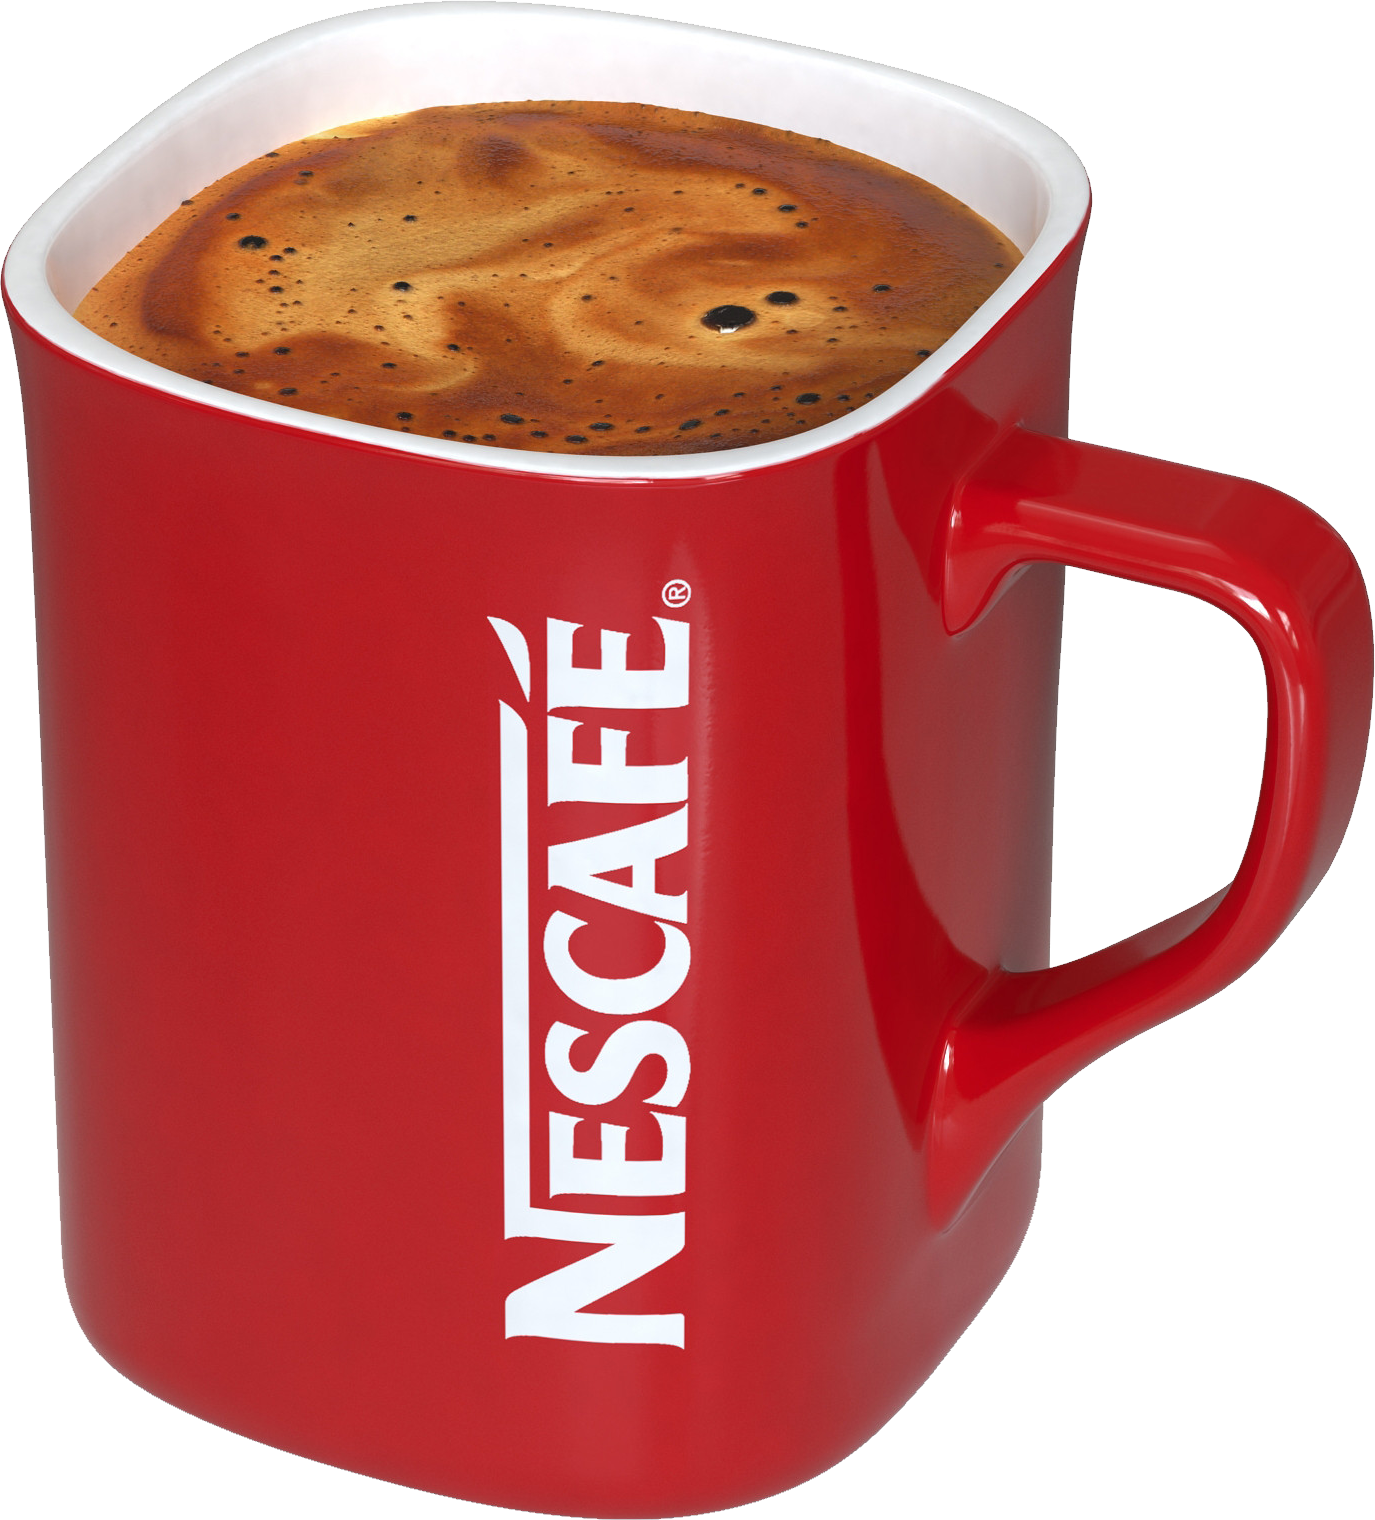 Nescafe red mug coffee PNG